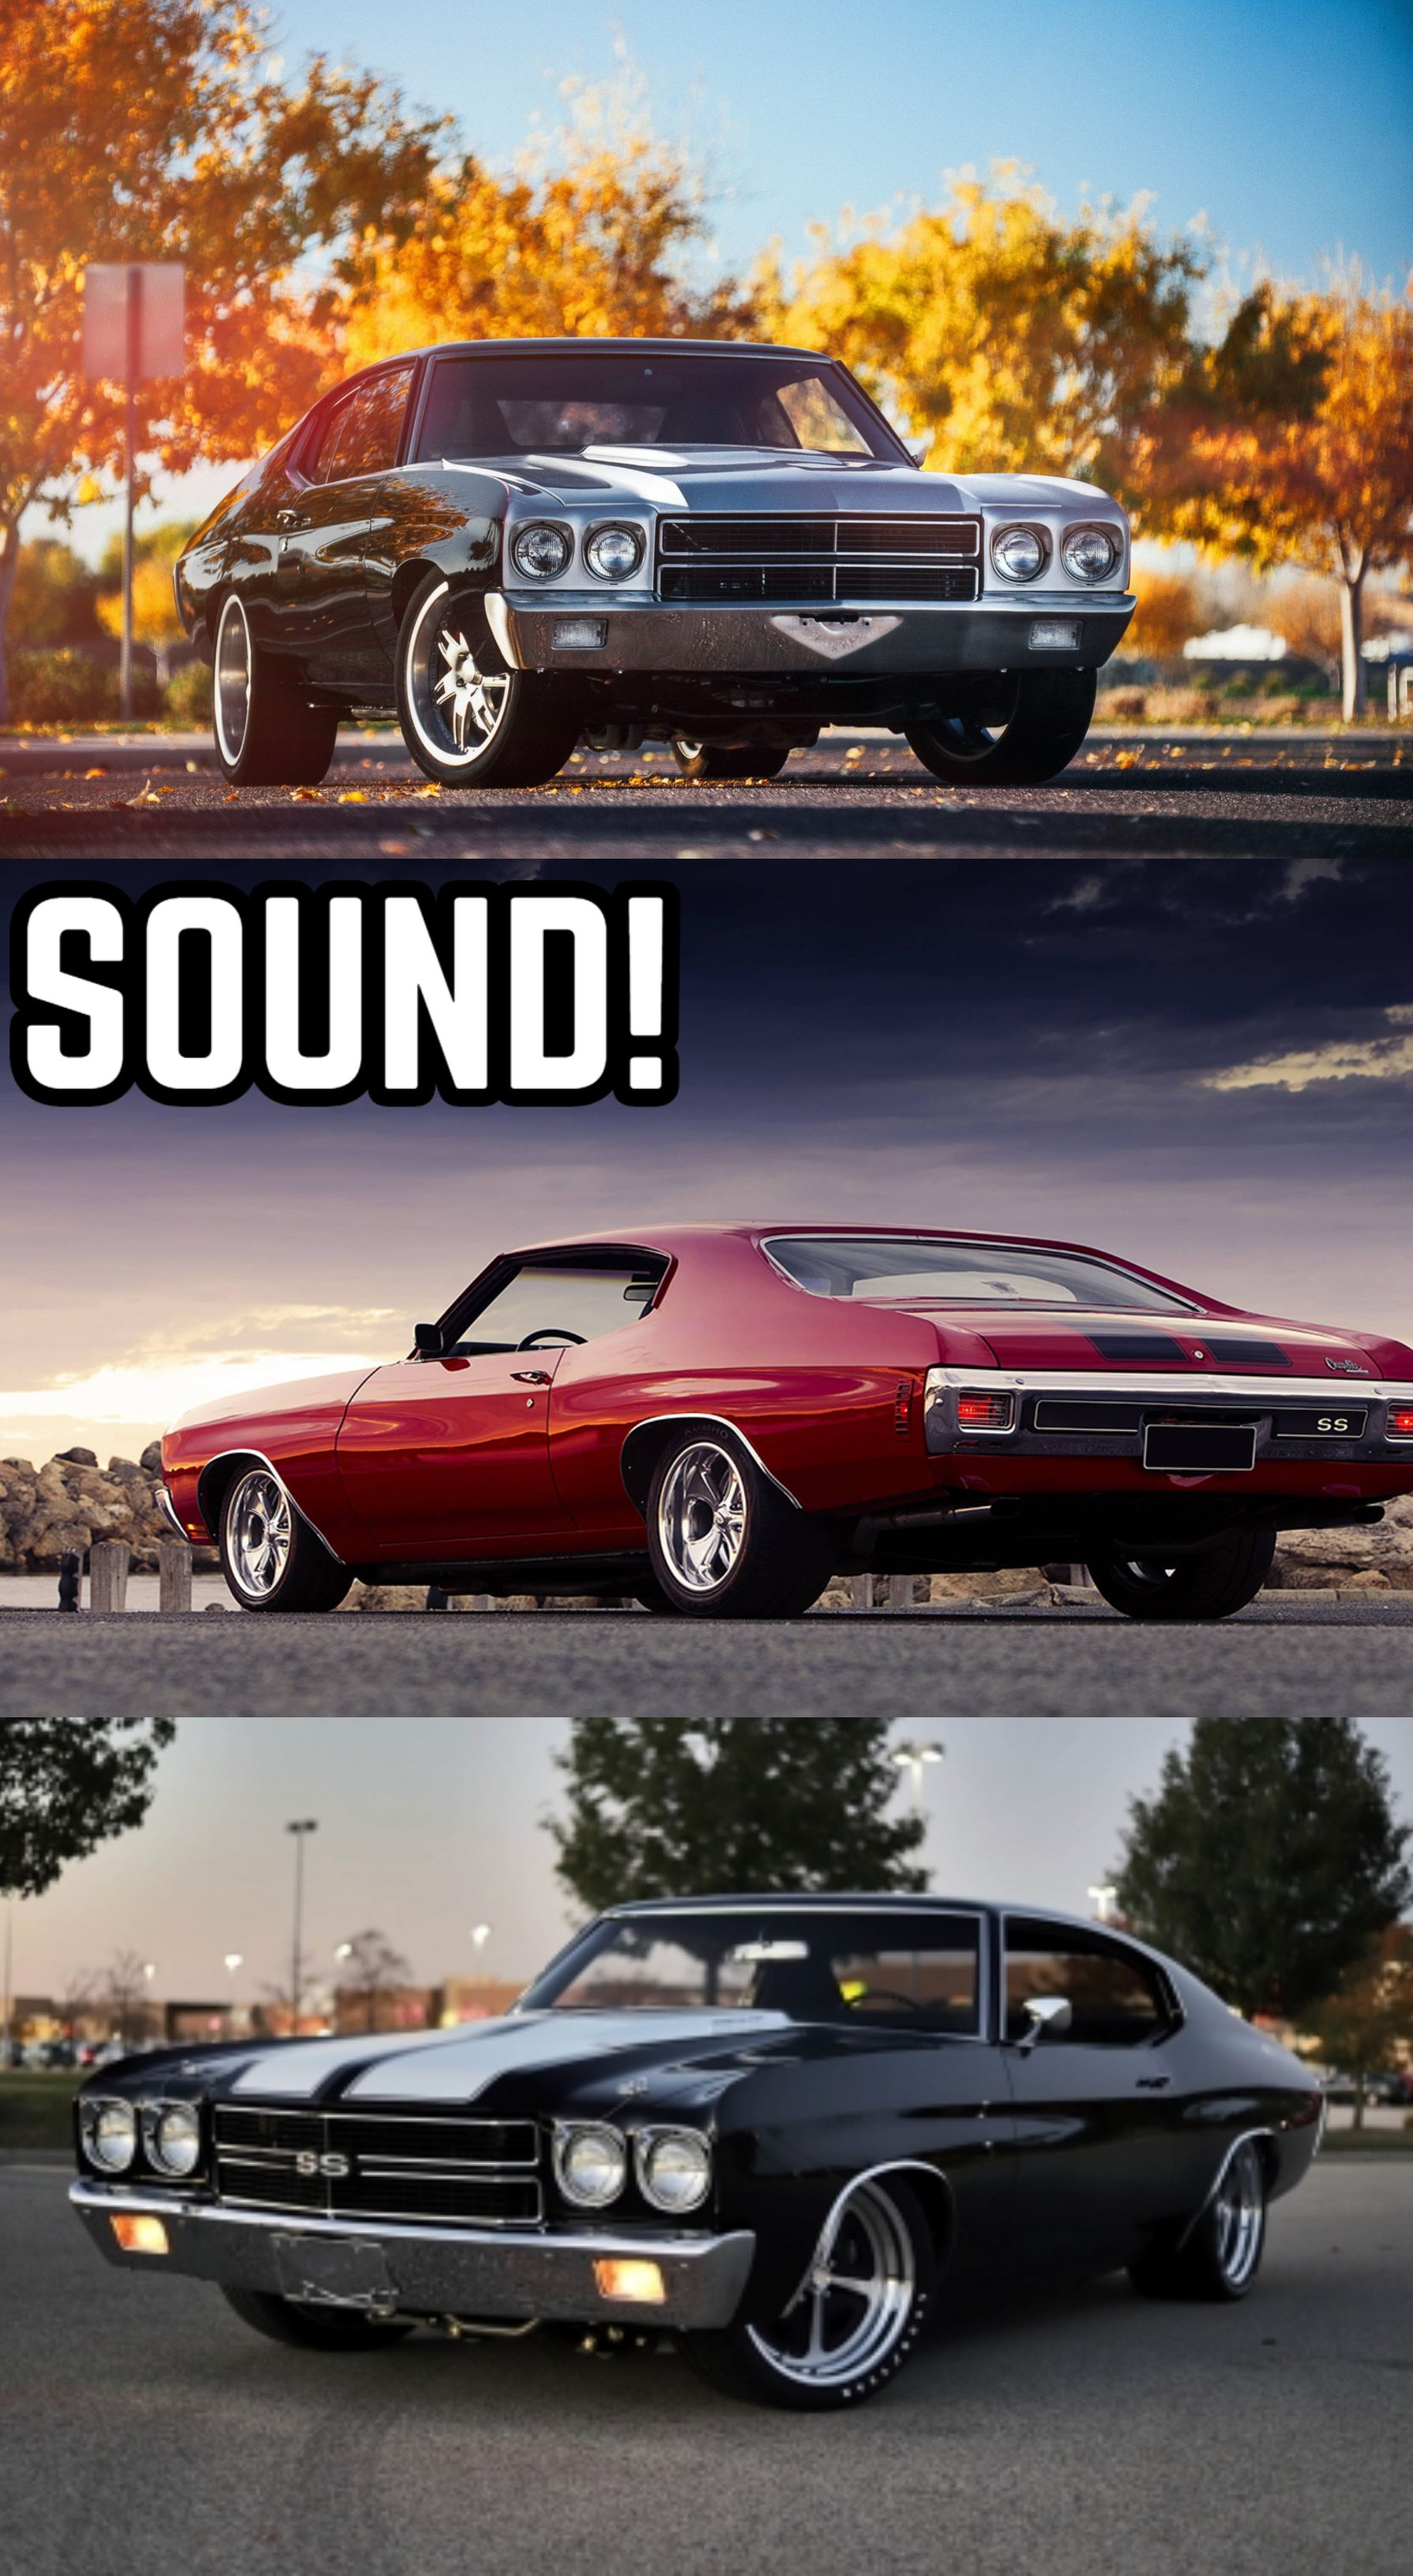 Chevrolet Chevelle Brutal Sound Exhaust Sound Compilation The